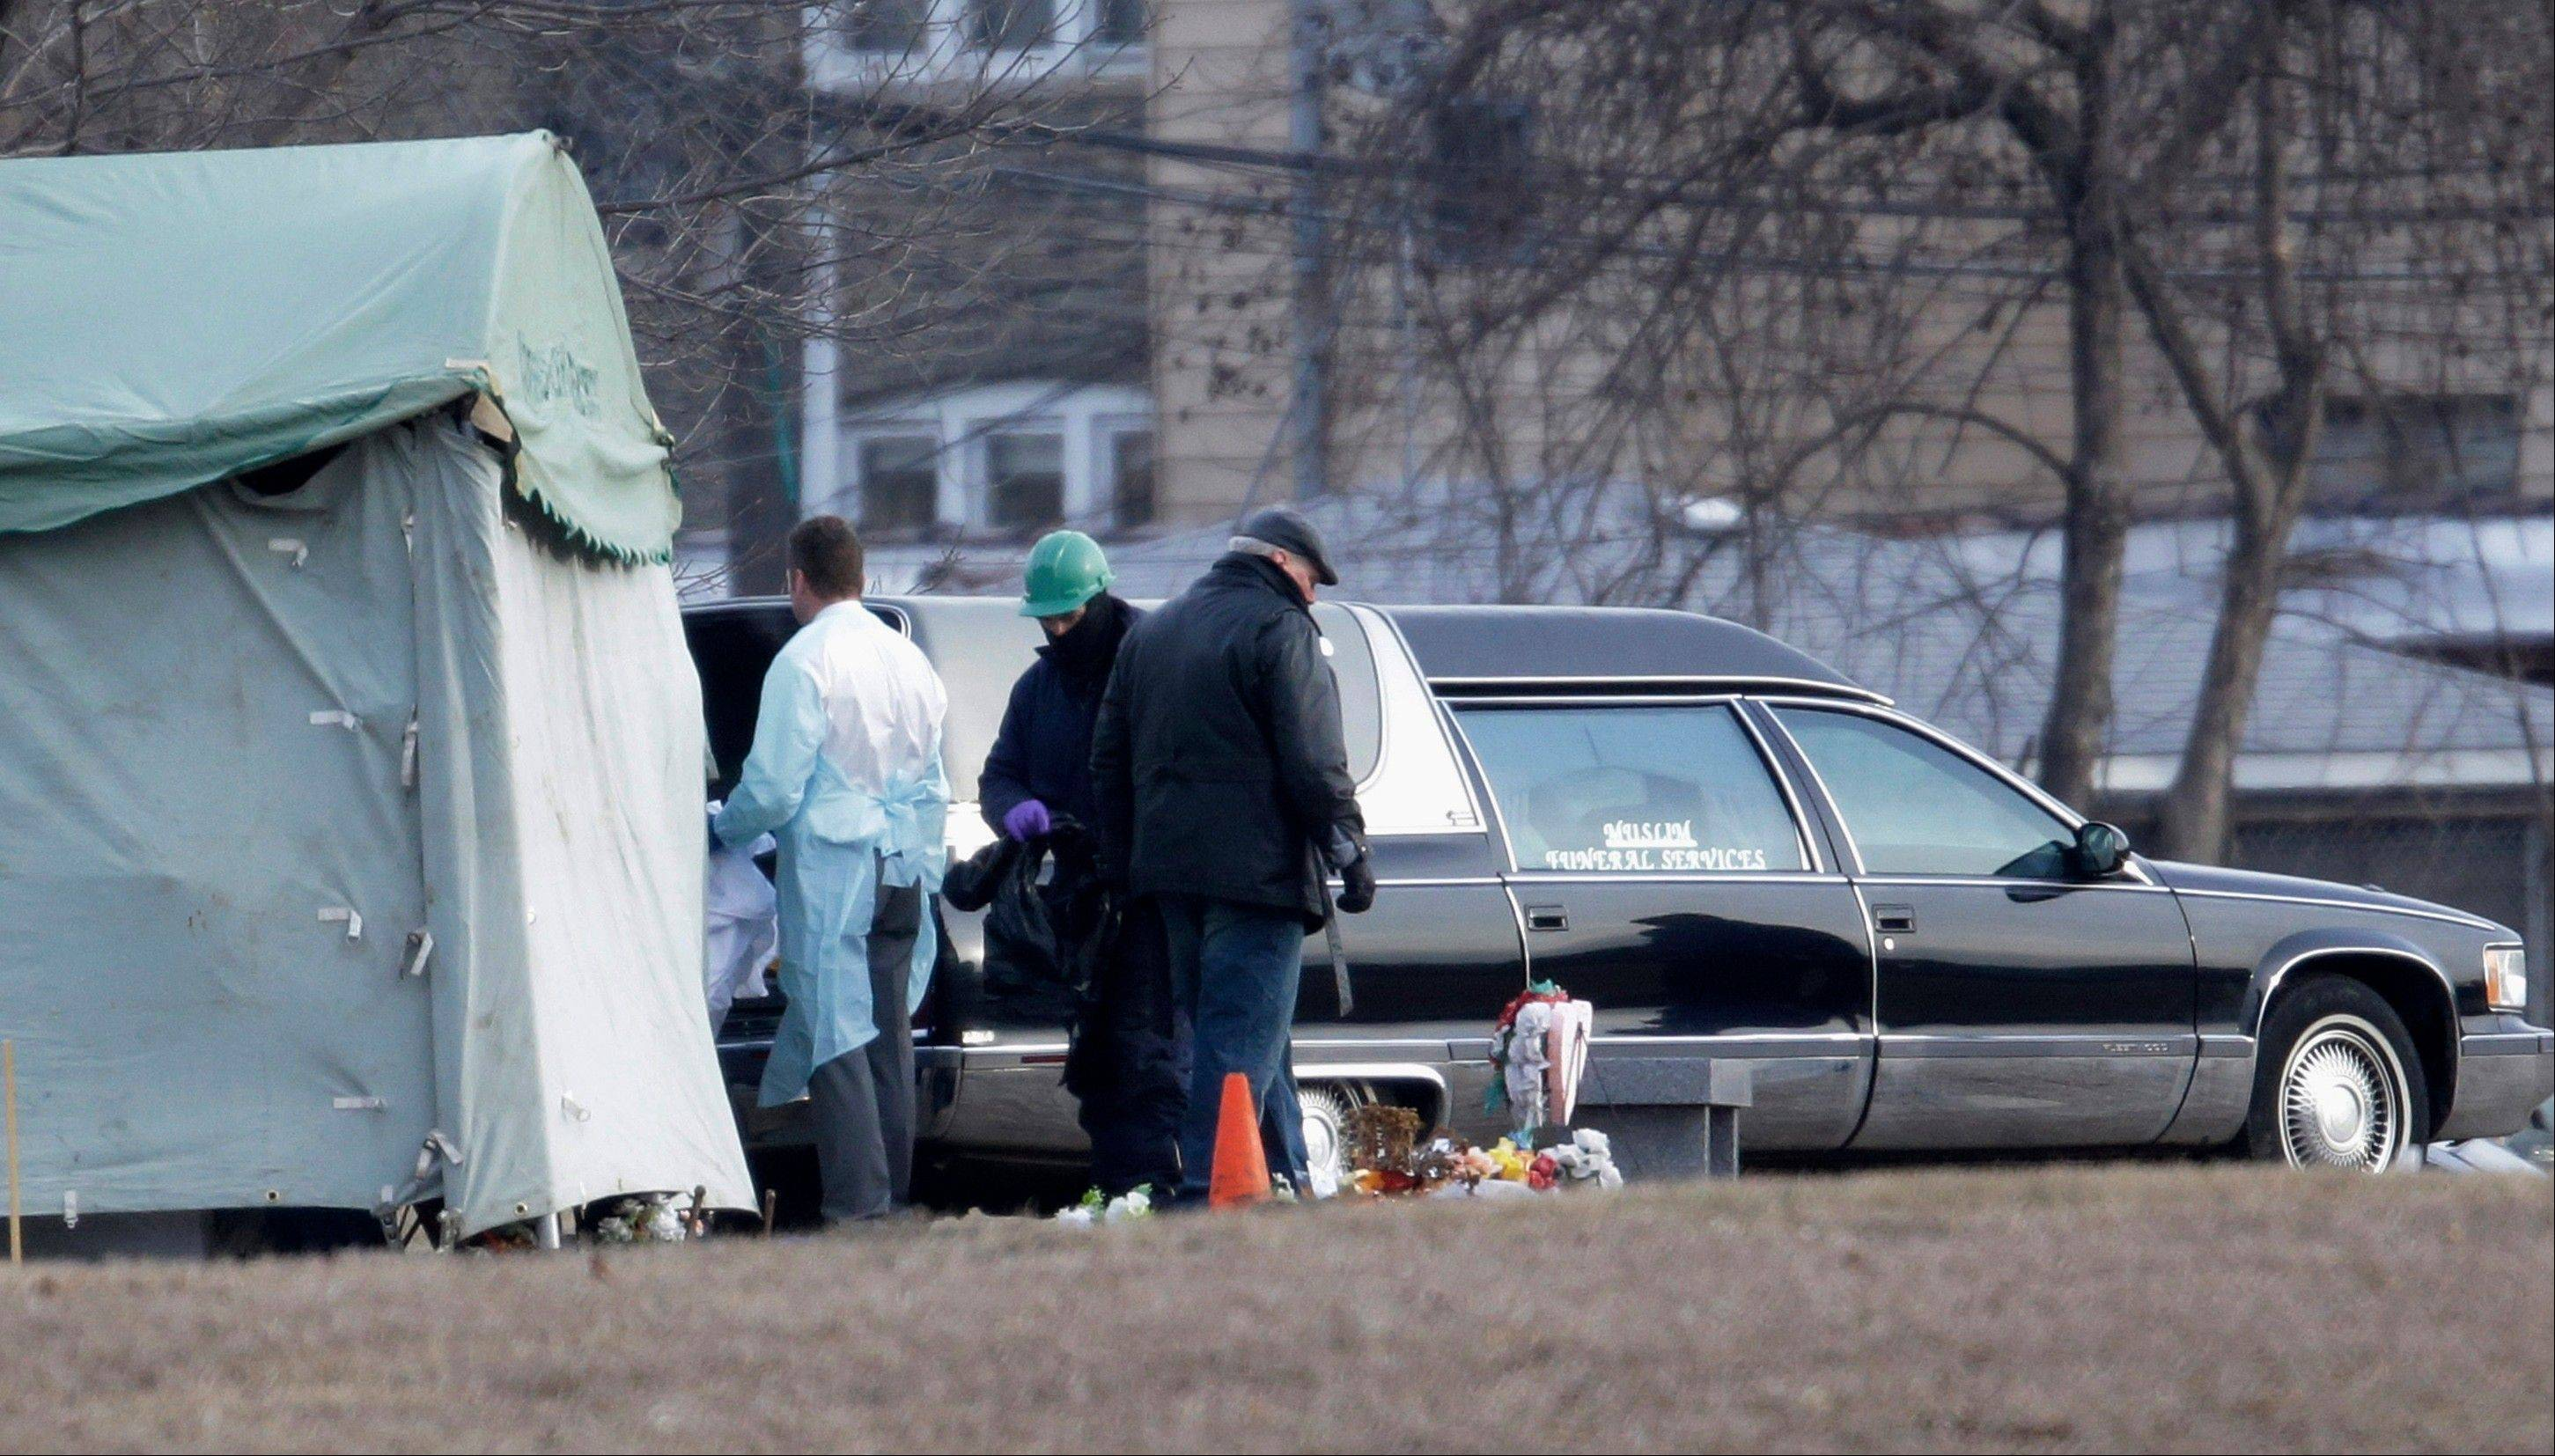 Workers at Rosehill Cemetery in Chicago place the body of Urooj Khan into a hearse after it was exhumed Friday for an autopsy to help solve the mystery surrounding his death.